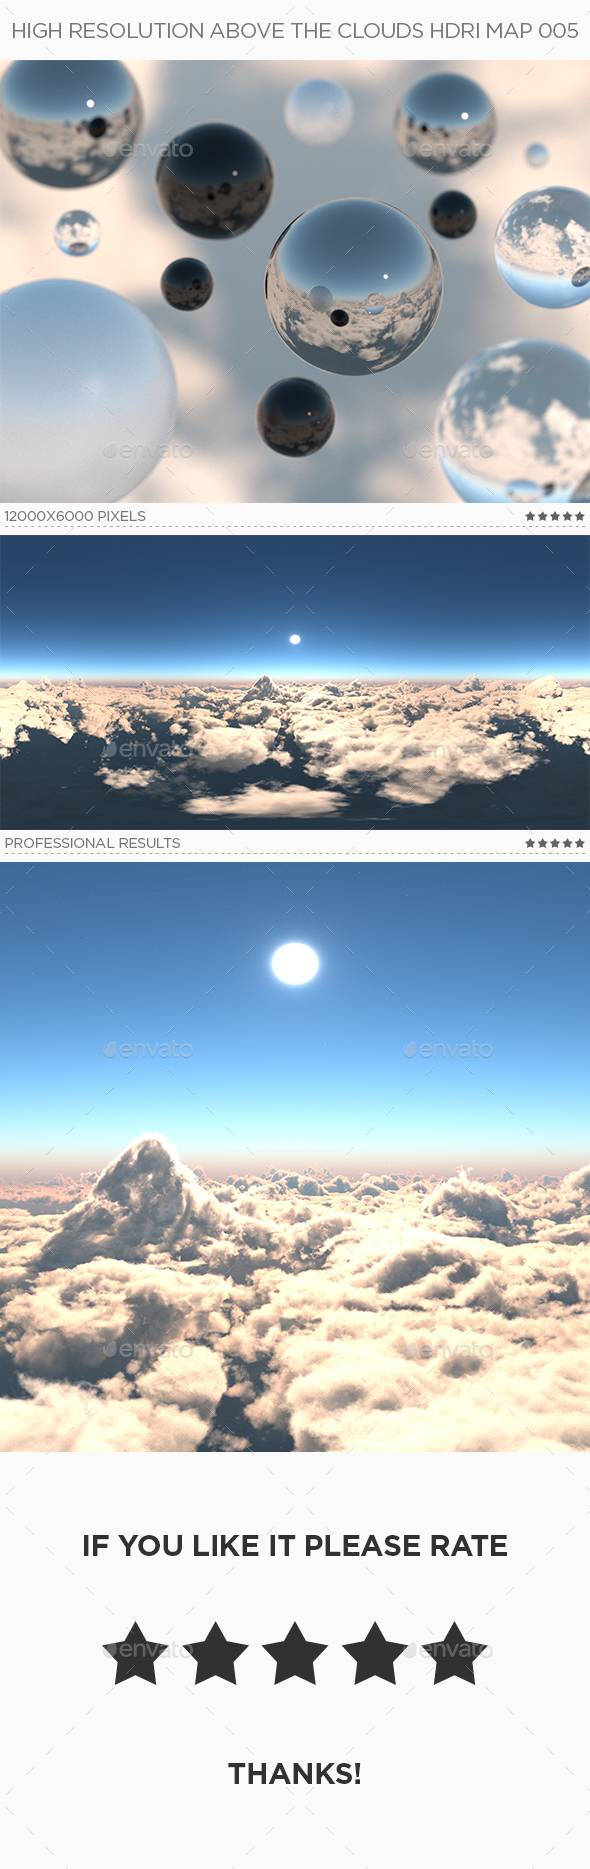 High Resolution Above The Clouds HDRi Map 005